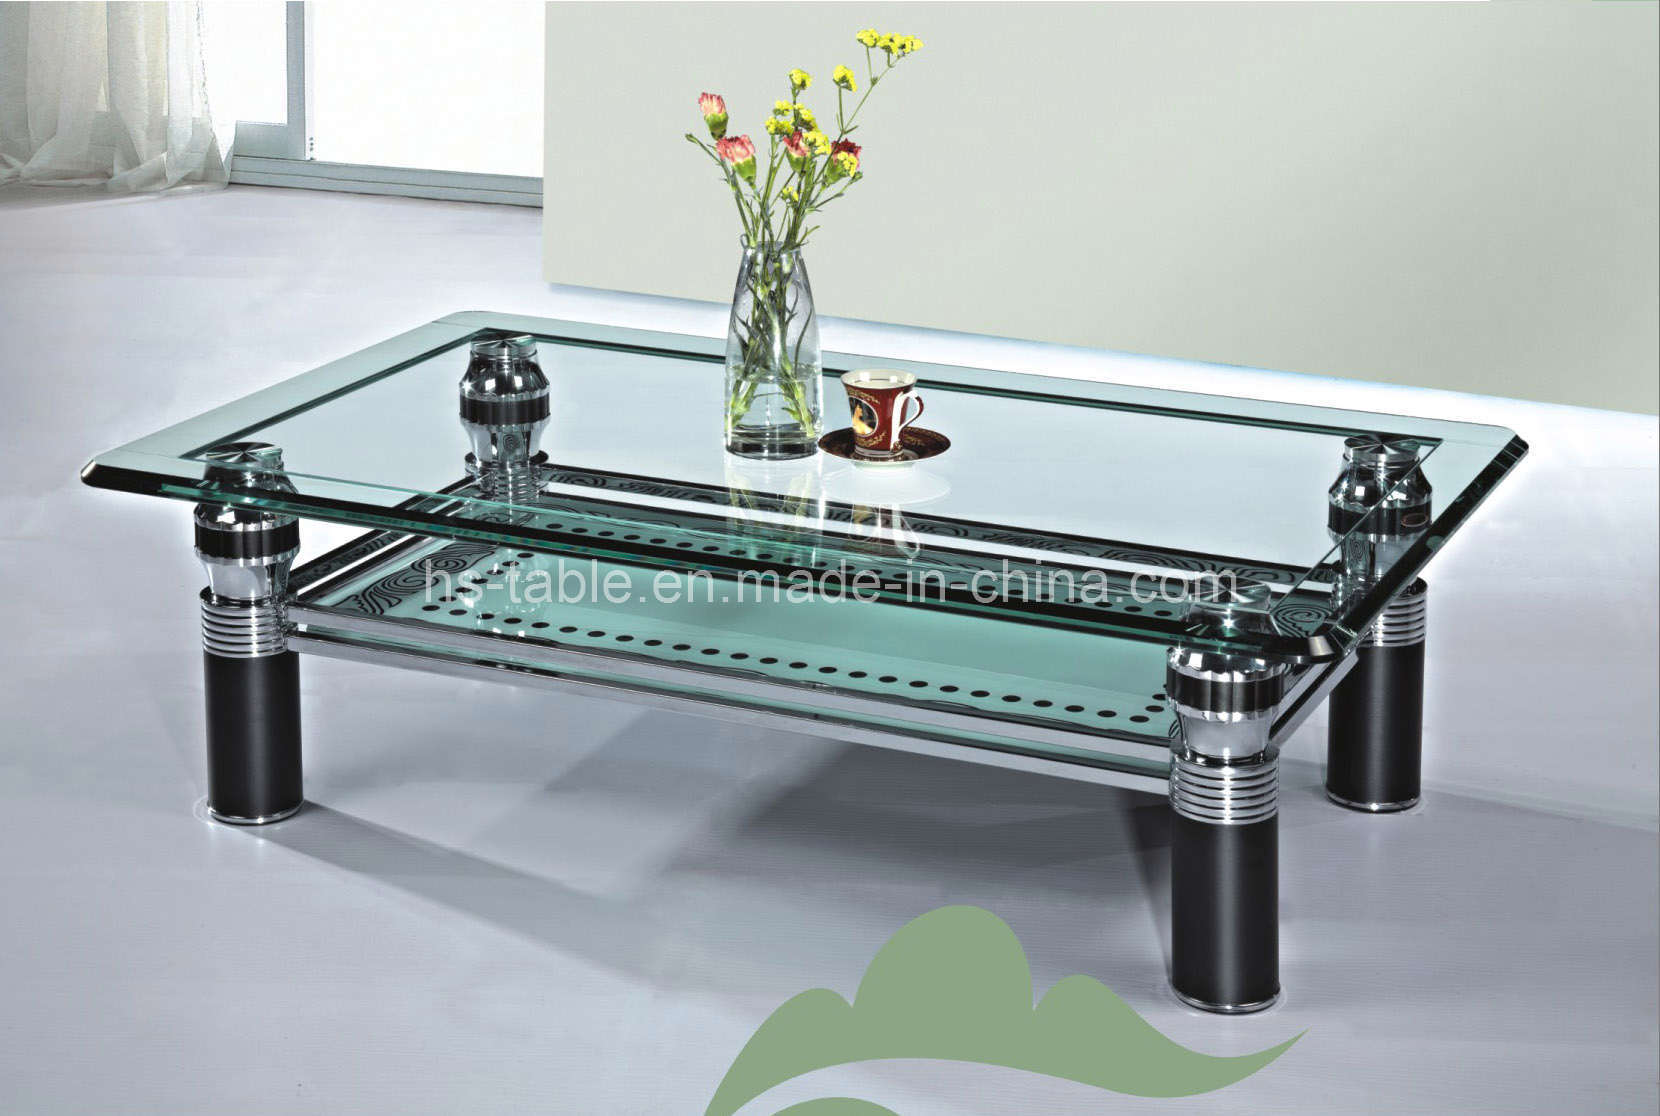 China Glass Furniture Glass Coffee Table 2293 China